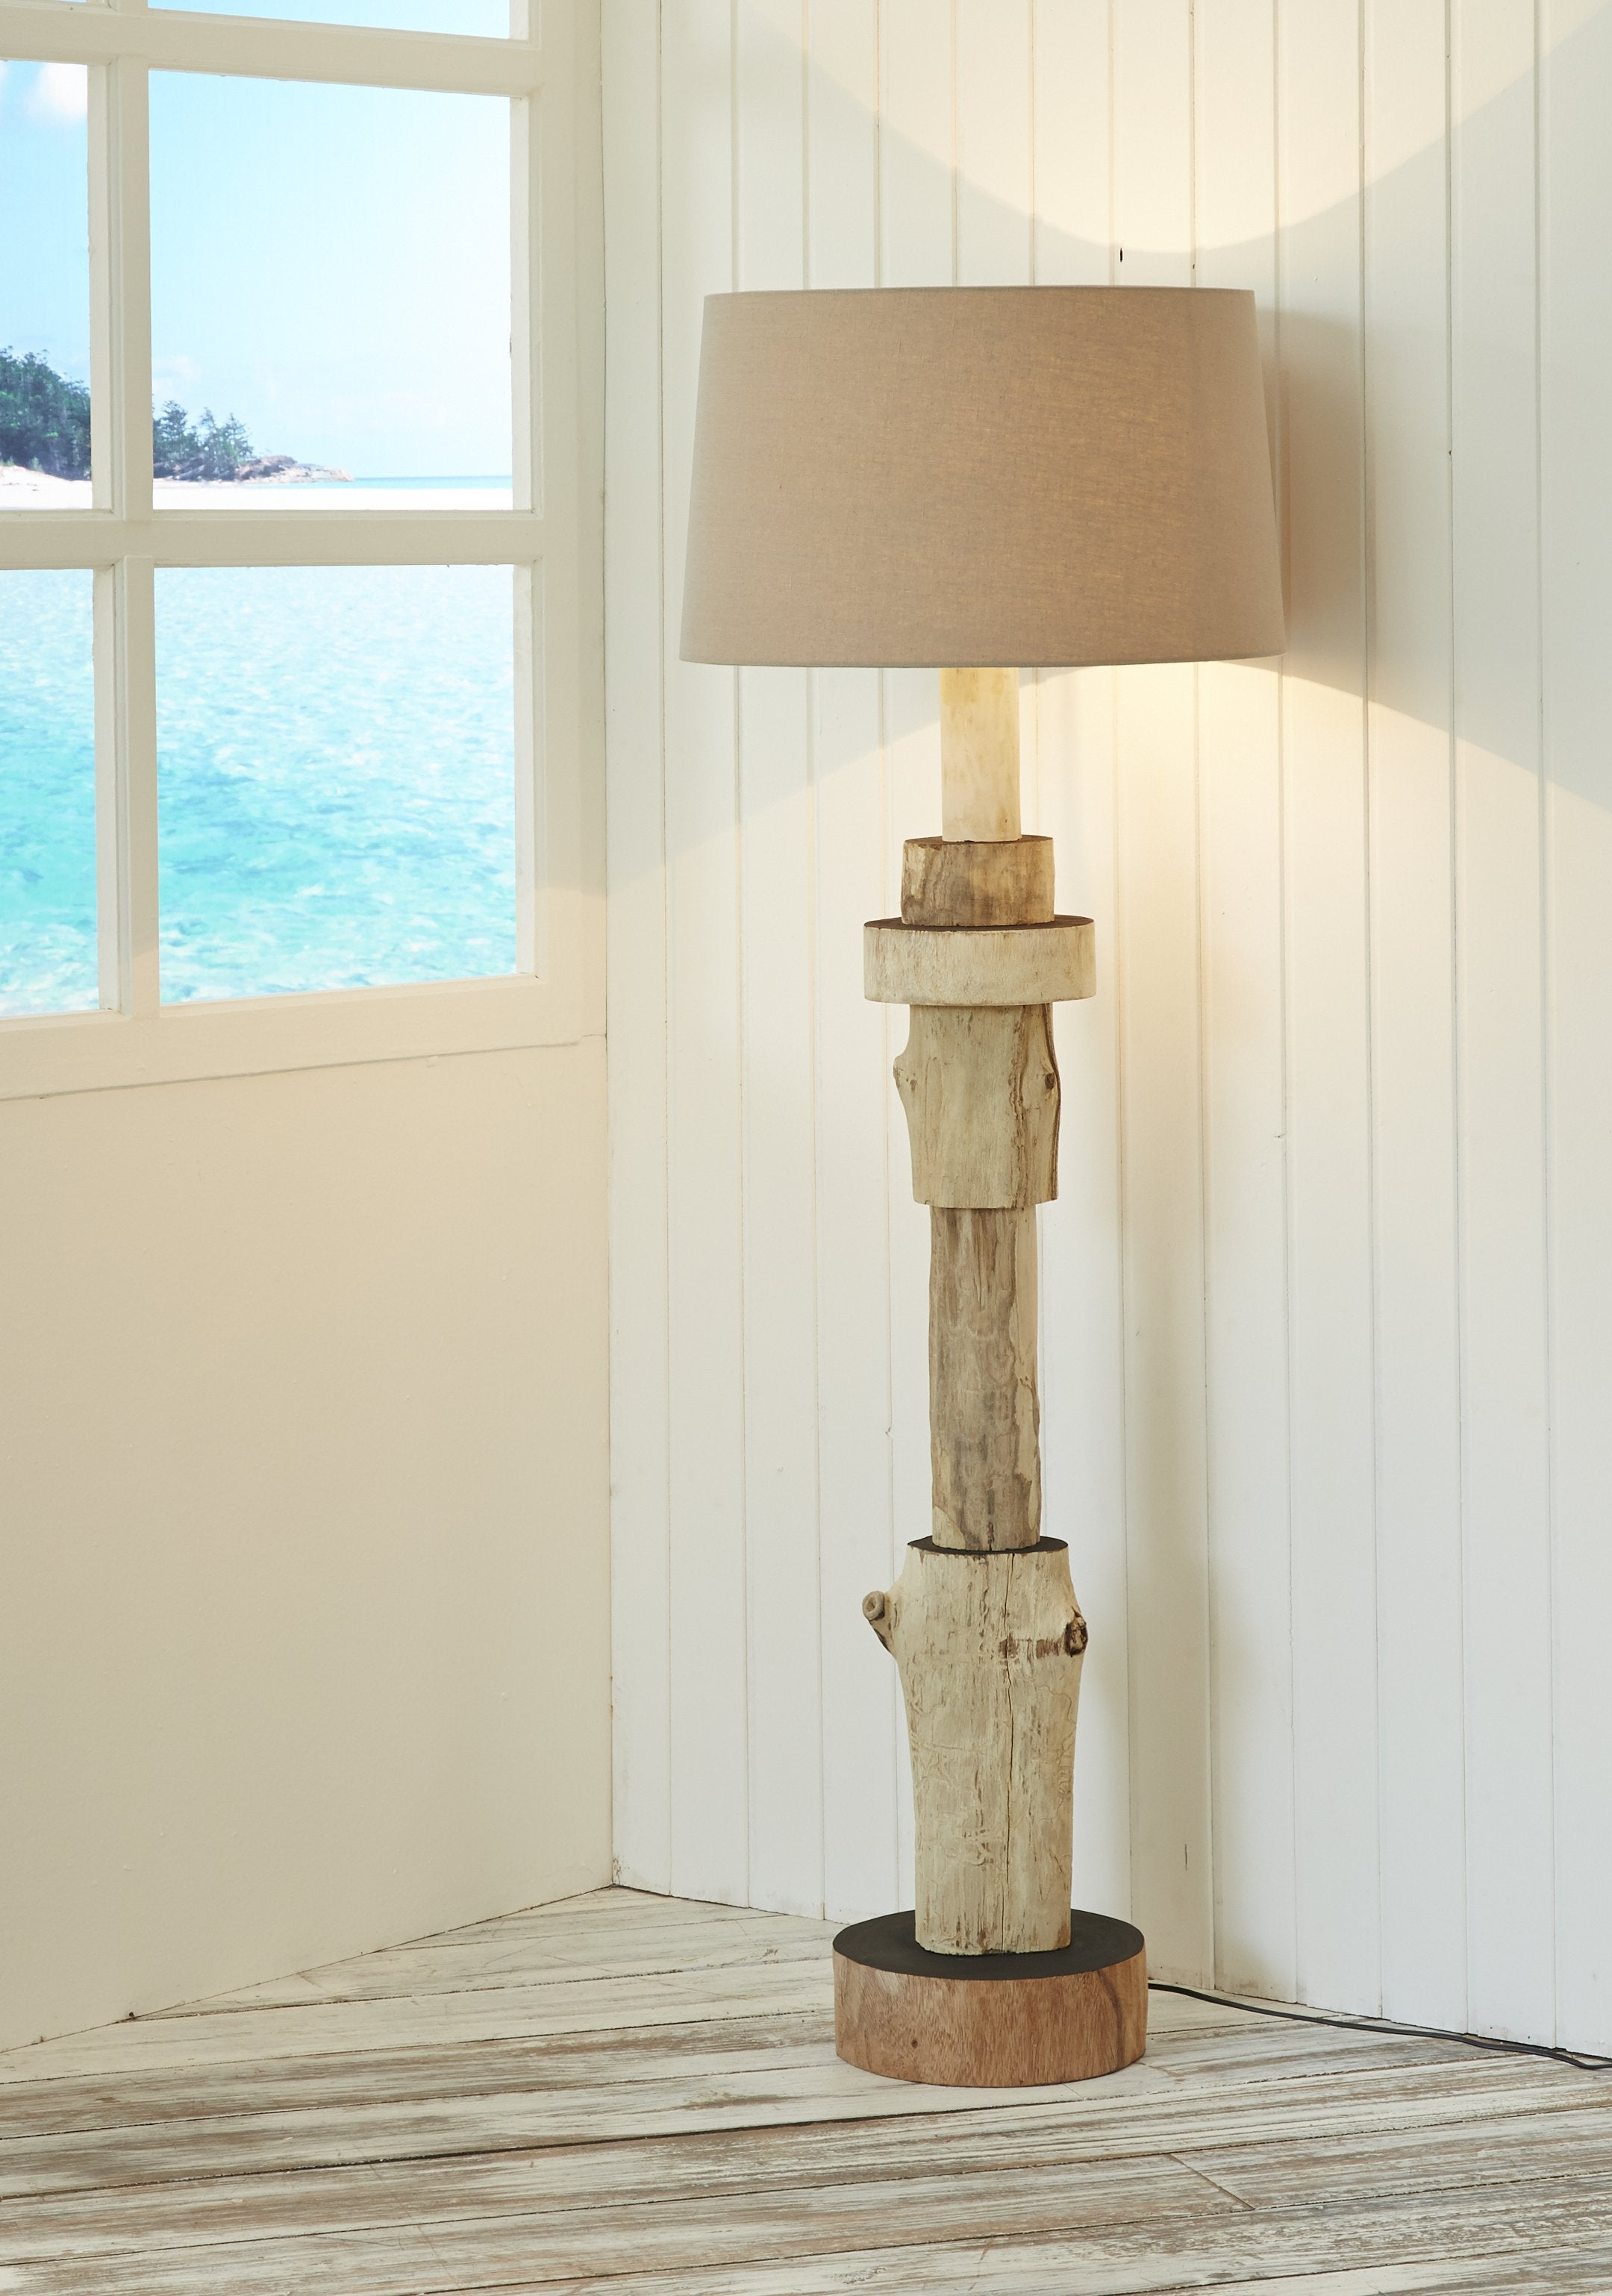 Segmented Solid Wooden Floor Lamp - O'THENTIQUE